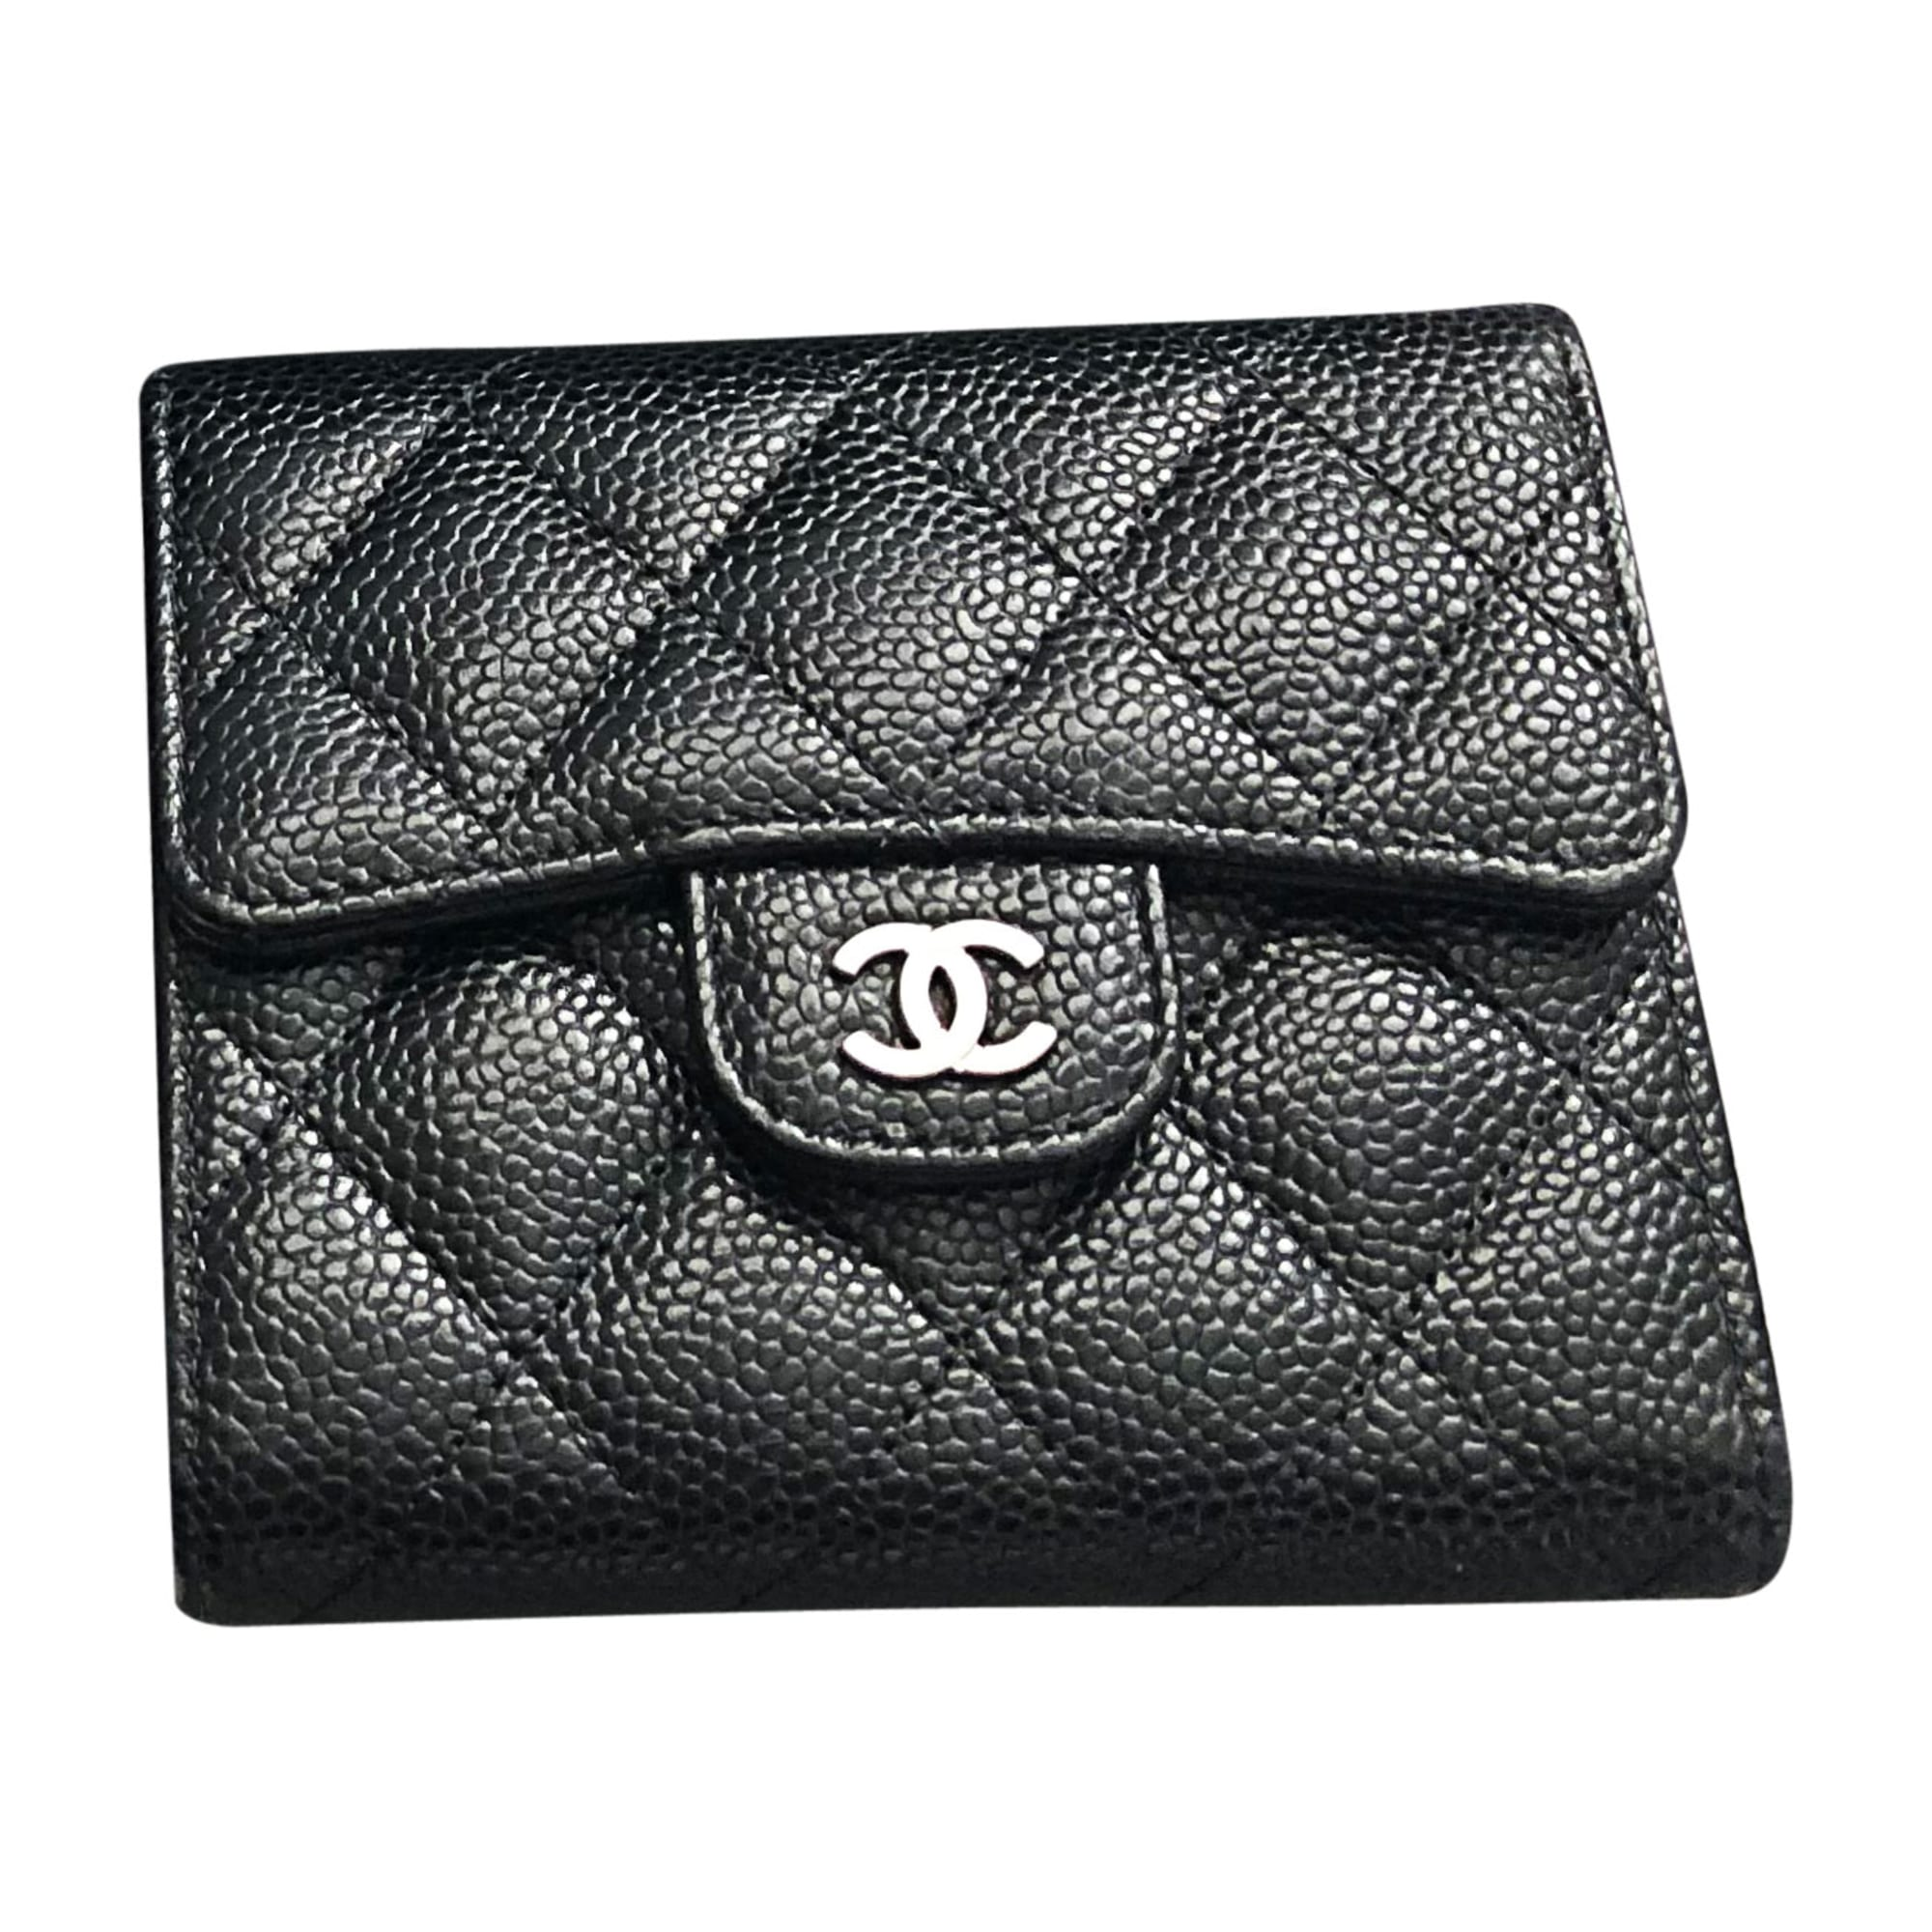 Portefeuille CHANEL boy noir - 7666419 3f3db8b2968